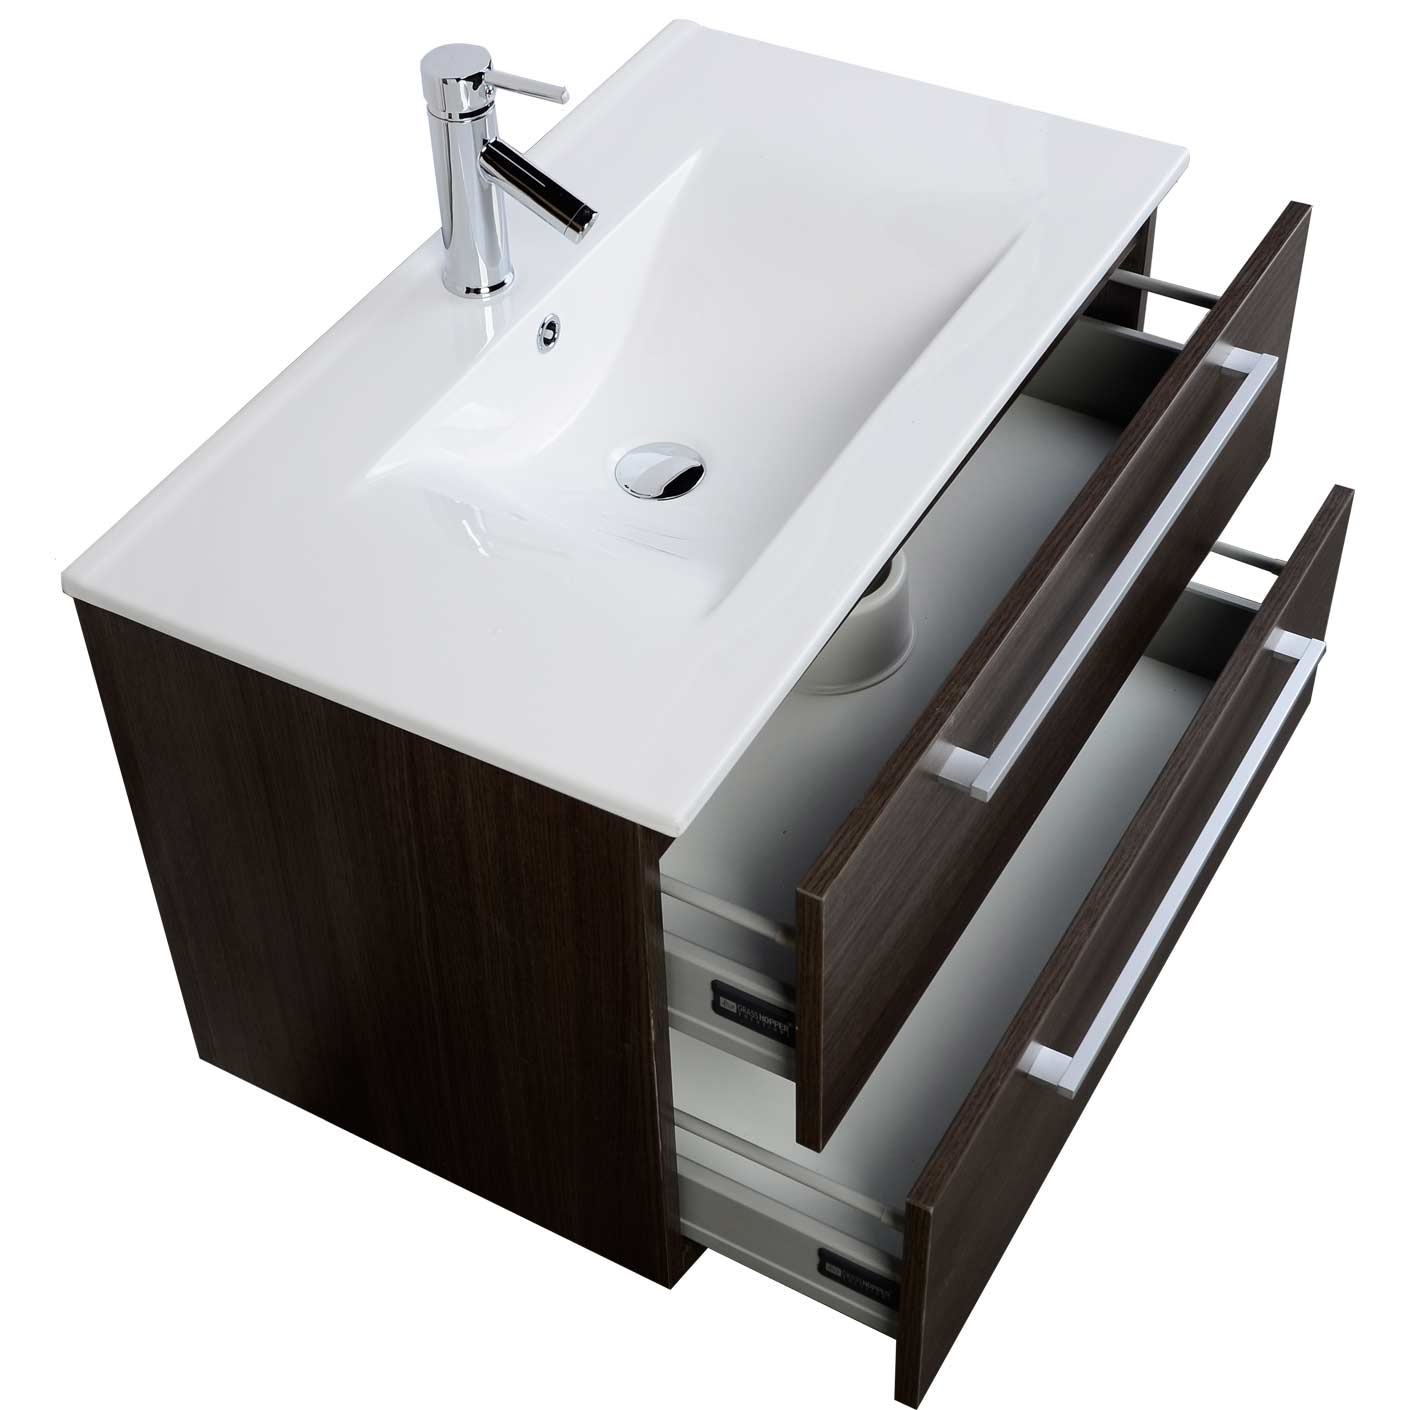 Modern wall Mount Bathroom Vanity cbi Grey Oak RS DM800 GOBuy 32 Inch Wall Mount Modern Bathroom Vanity Set Oak RS DM800 OAK  . 32 Inch Bathroom Vanity. Home Design Ideas